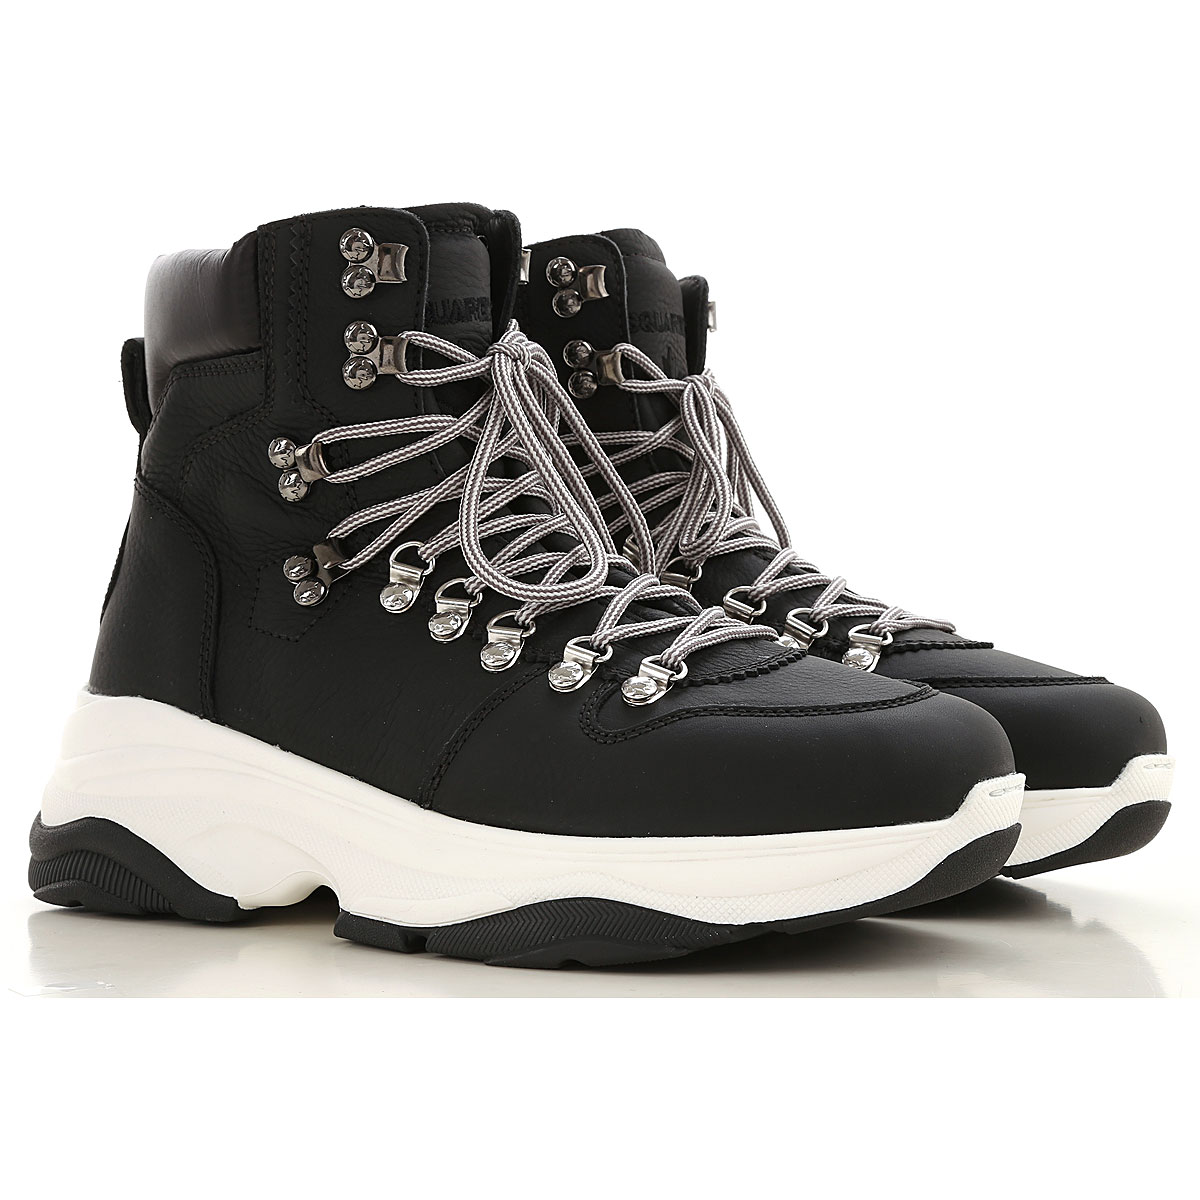 Dsquared2 Boots for Men, Booties On Sale, Black, Leather, 2019, 10.5 11.5 7.5 8 8.5 9